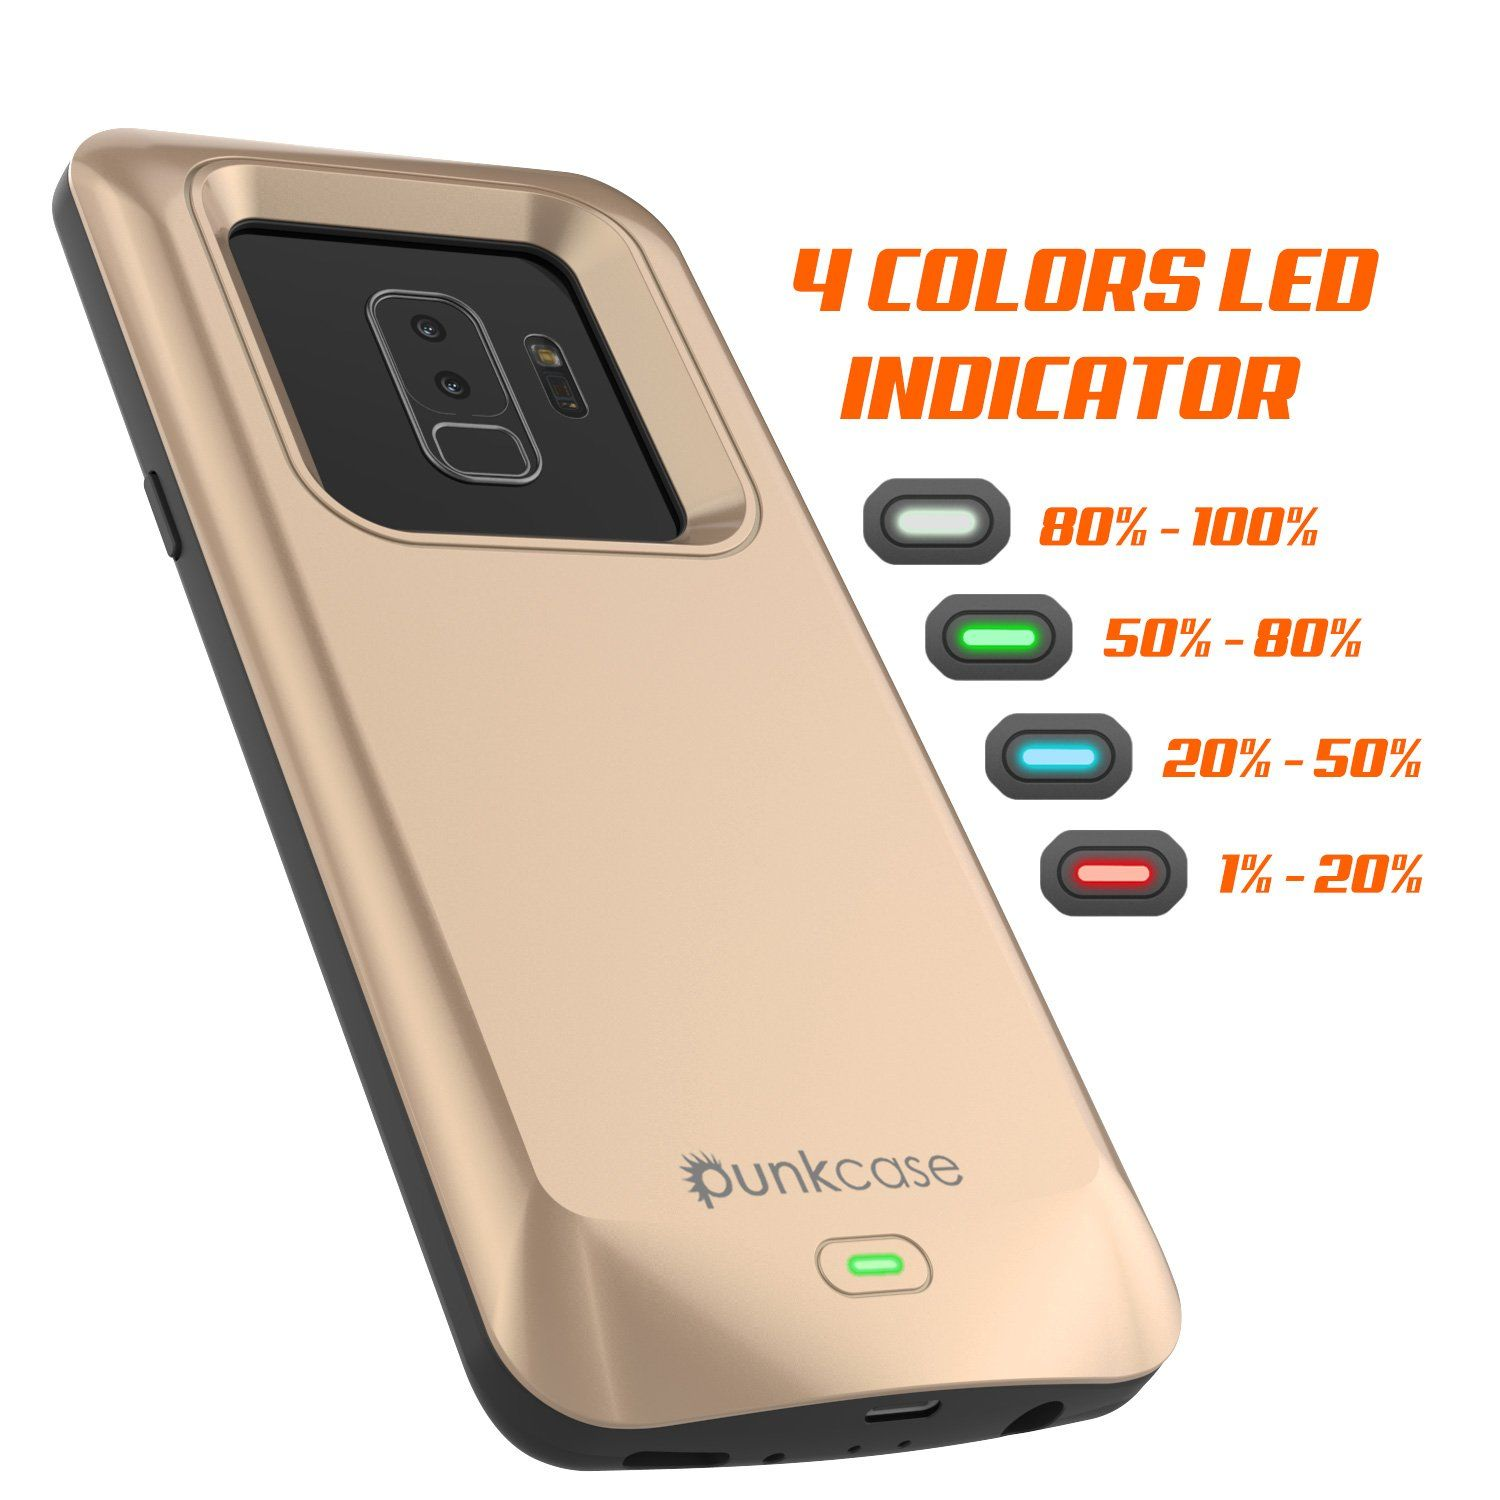 new product 9be3a 930b5 Galaxy S9 PLUS Battery Case, PunkJuice 5000mAH Fast Charging Power ...